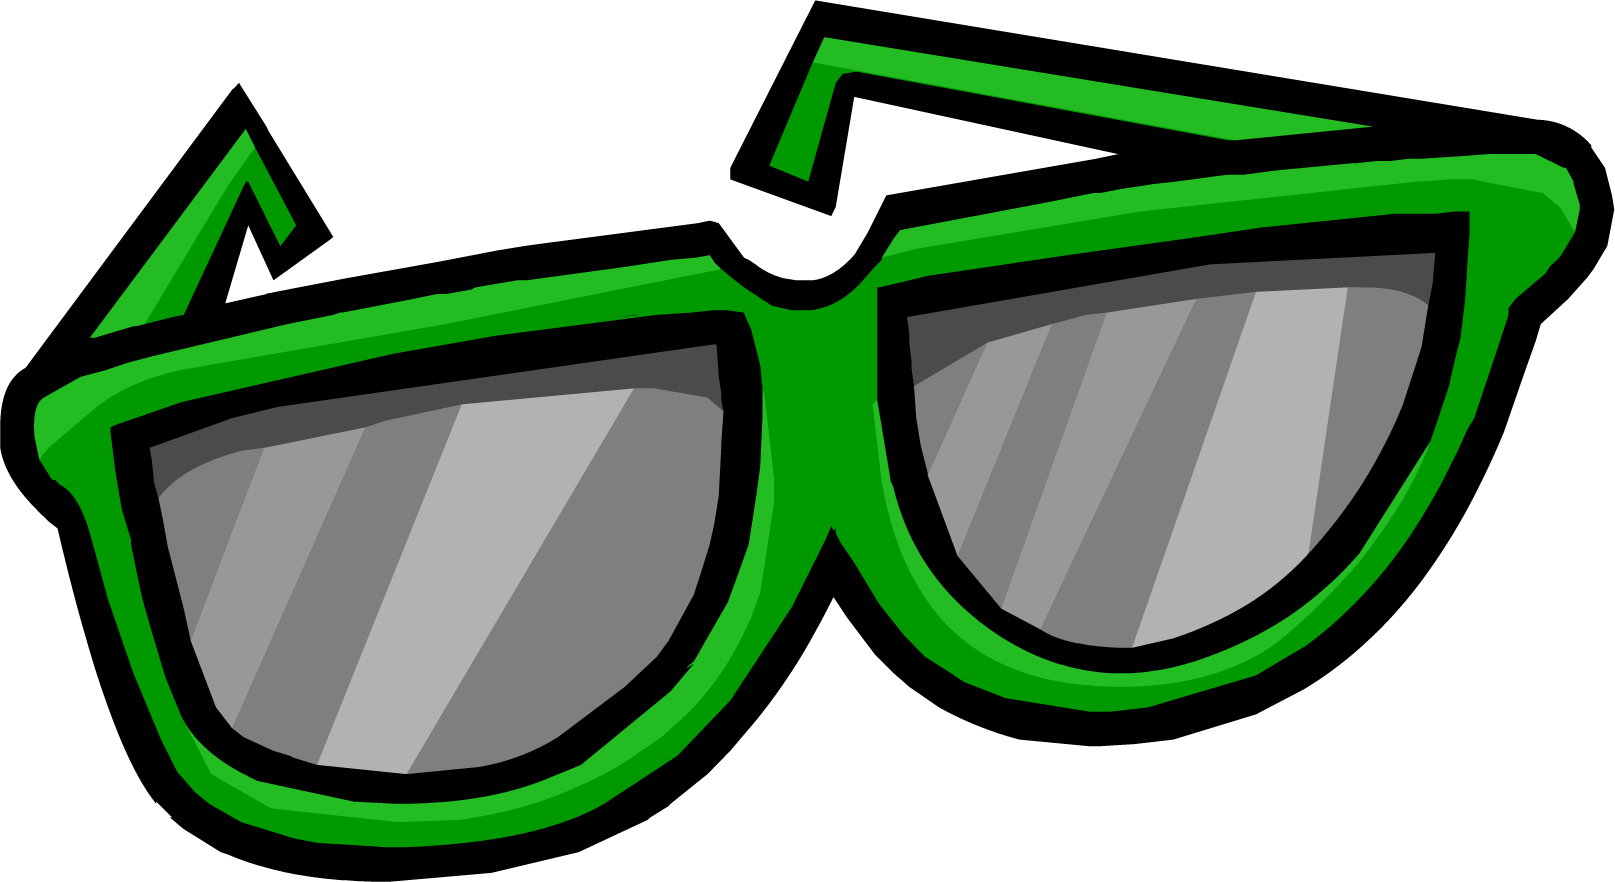 Image giant green png. Clipart sunglasses diva